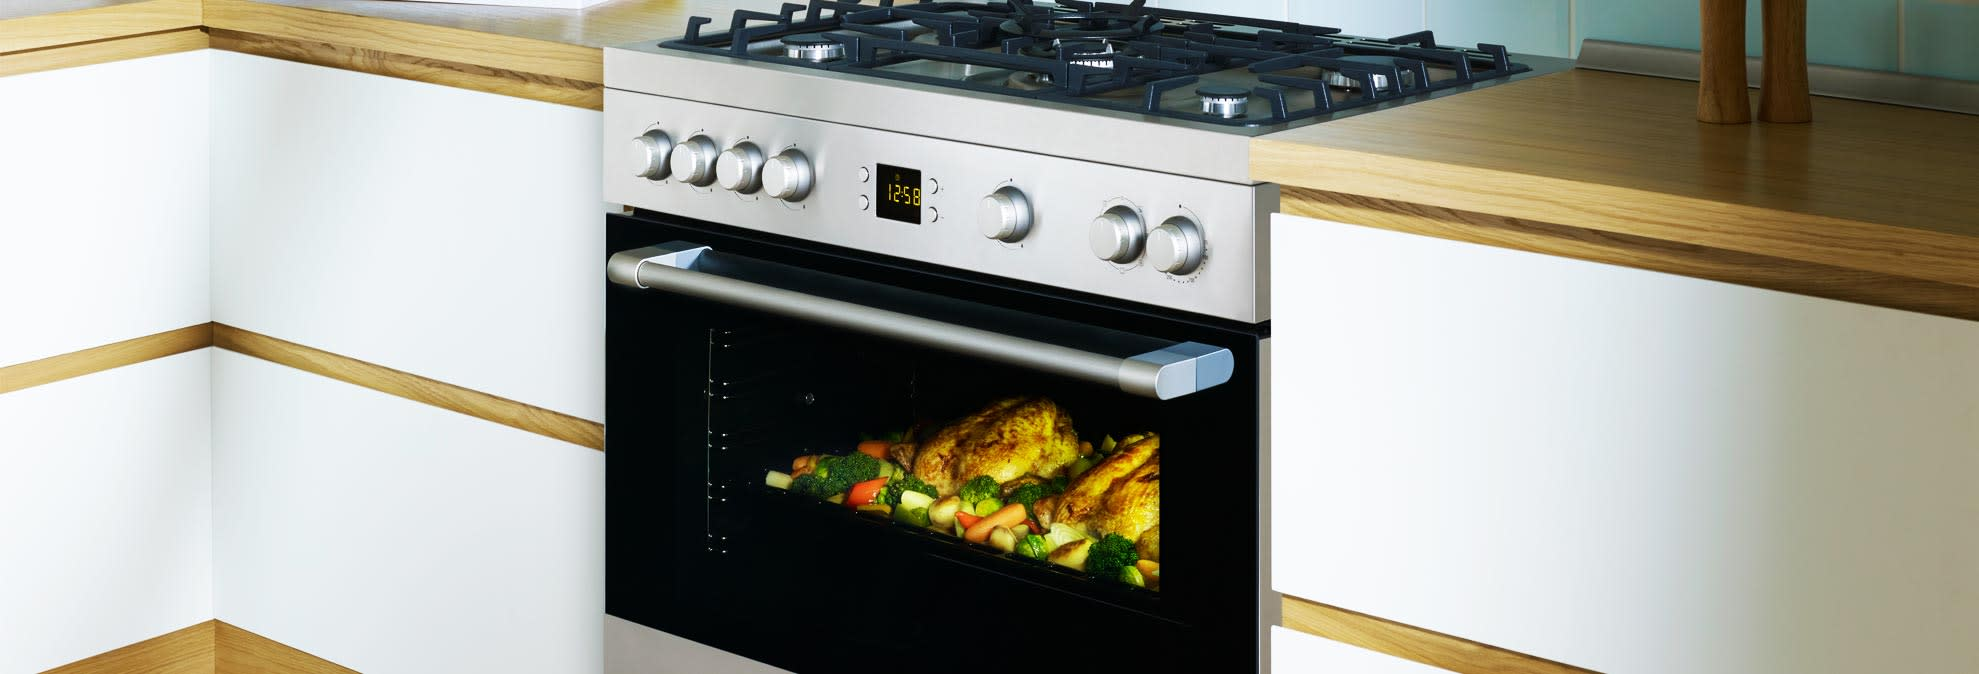 best kitchen stoves porcelain tile floor ranges with big ovens consumer reports